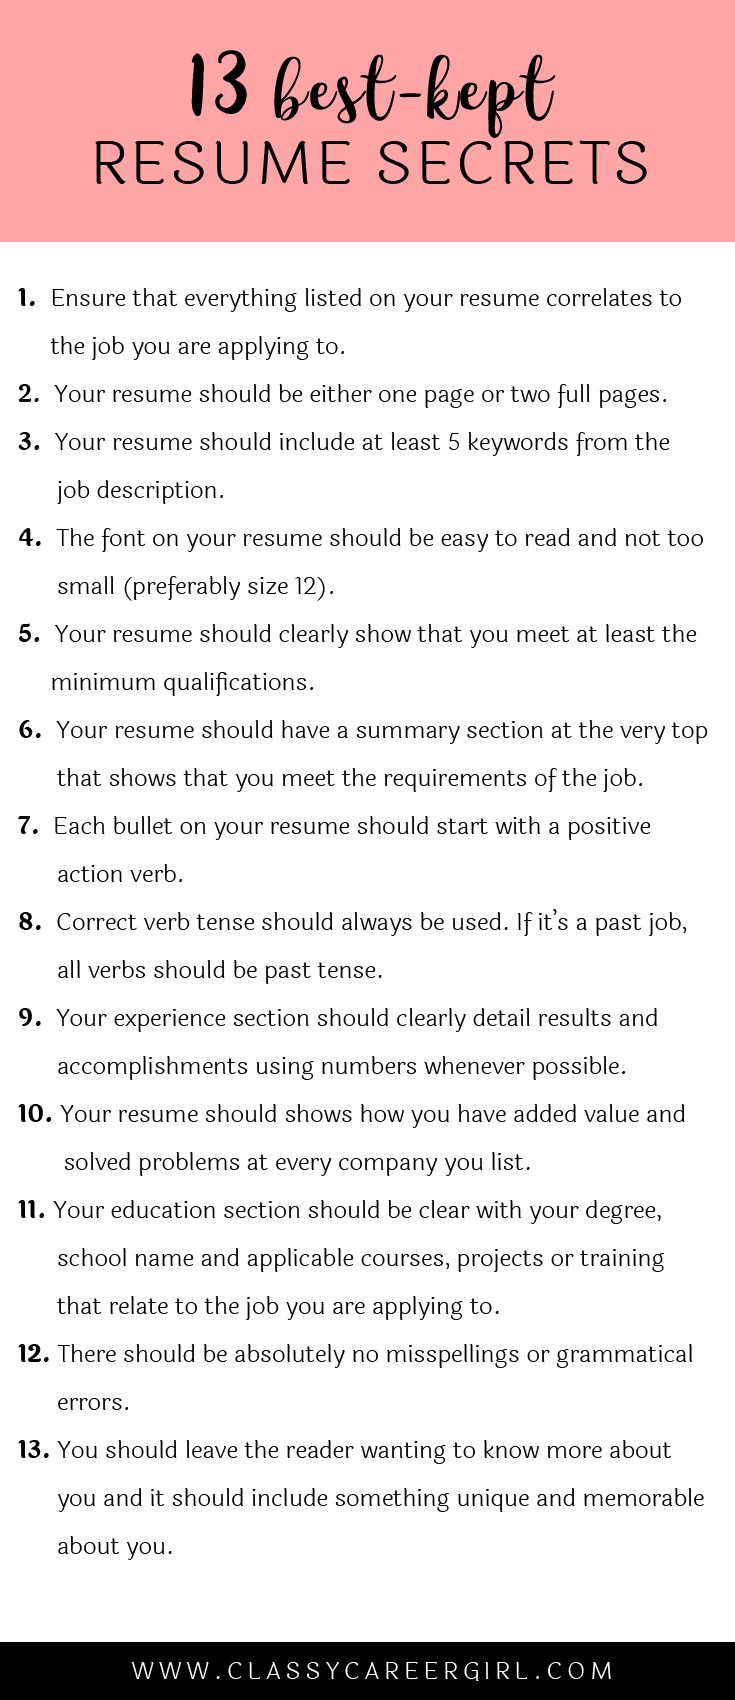 Opposenewapstandardsus  Fascinating  Ideas About Resume On Pinterest  Cv Format Resume Cv And  With Magnificent Some Hiring Managers Will Toss Your Resume Out If You Dont Know These  With Awesome Best Resume Writing Service Reviews Also College Student Resume Samples In Addition Clerical Duties Resume And Resume For Accountant As Well As Resume For Factory Worker Additionally Resume Organizational Skills From Pinterestcom With Opposenewapstandardsus  Magnificent  Ideas About Resume On Pinterest  Cv Format Resume Cv And  With Awesome Some Hiring Managers Will Toss Your Resume Out If You Dont Know These  And Fascinating Best Resume Writing Service Reviews Also College Student Resume Samples In Addition Clerical Duties Resume From Pinterestcom